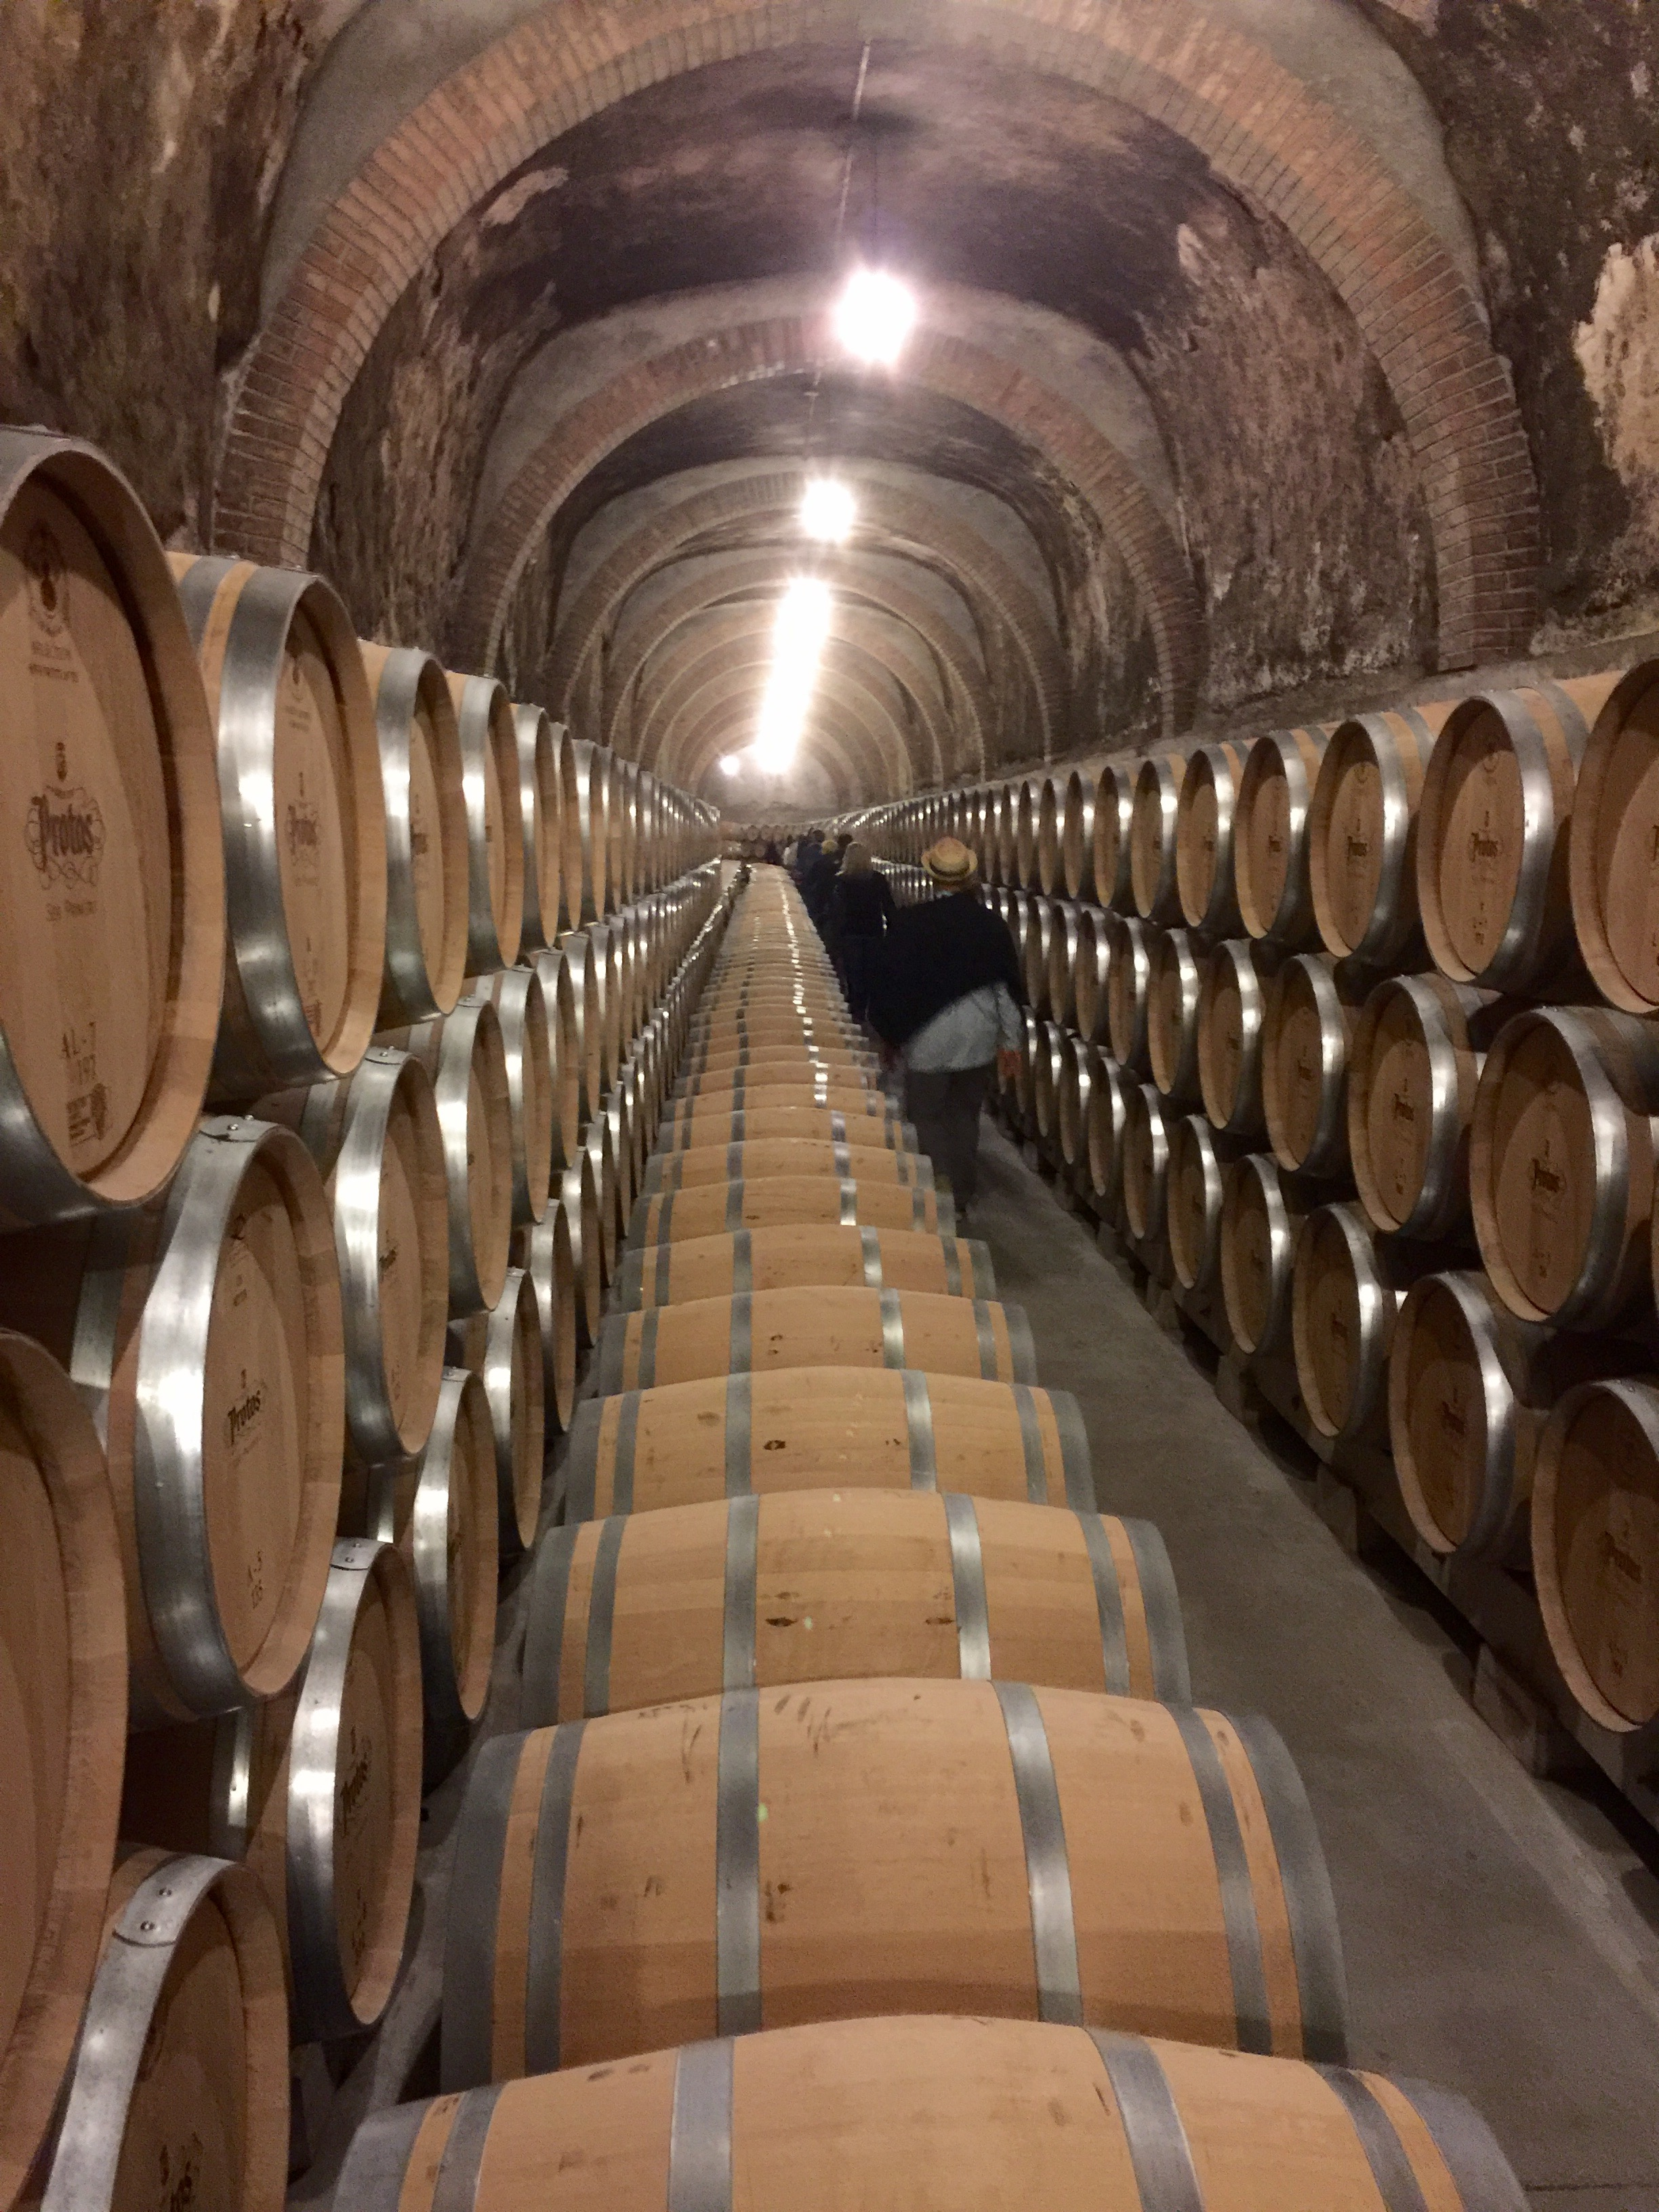 At Protus Winery in Ribera del Duero walking through over a mile of caves underneath Castle Penafiel.